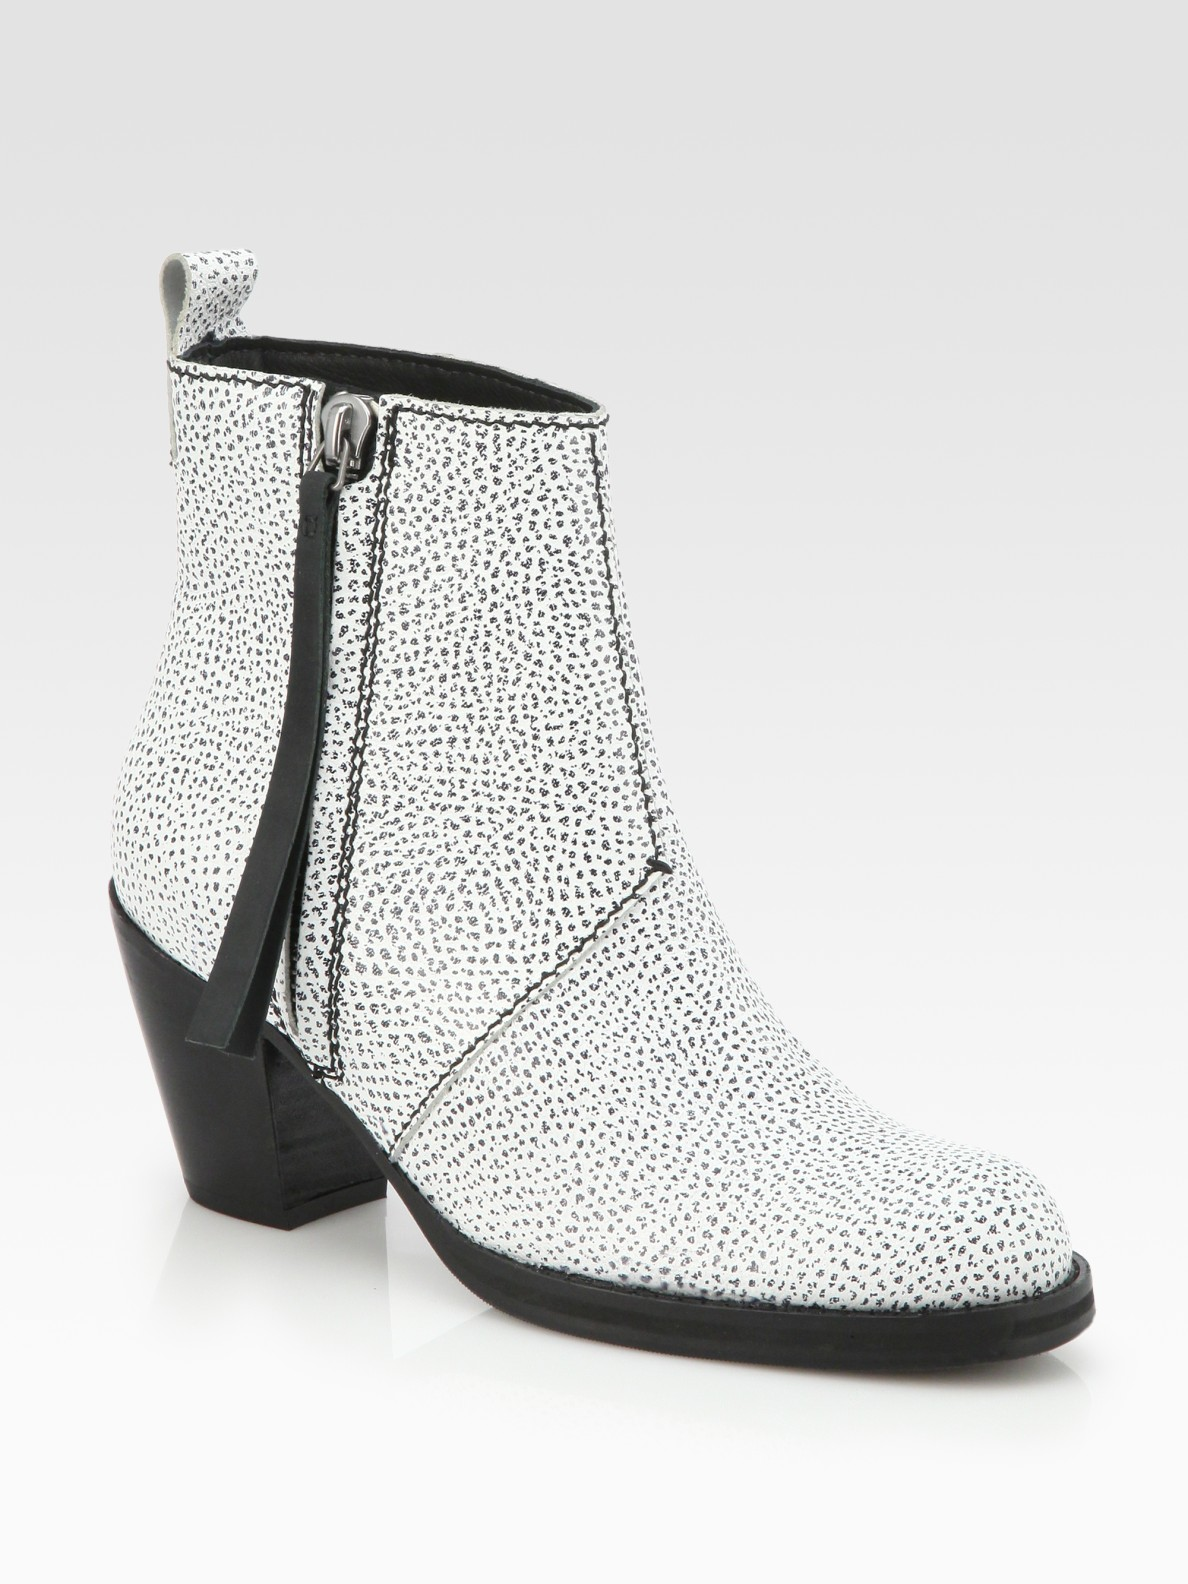 Acne Pistol Speckled Leather Ankle Boots in Natural | Lyst